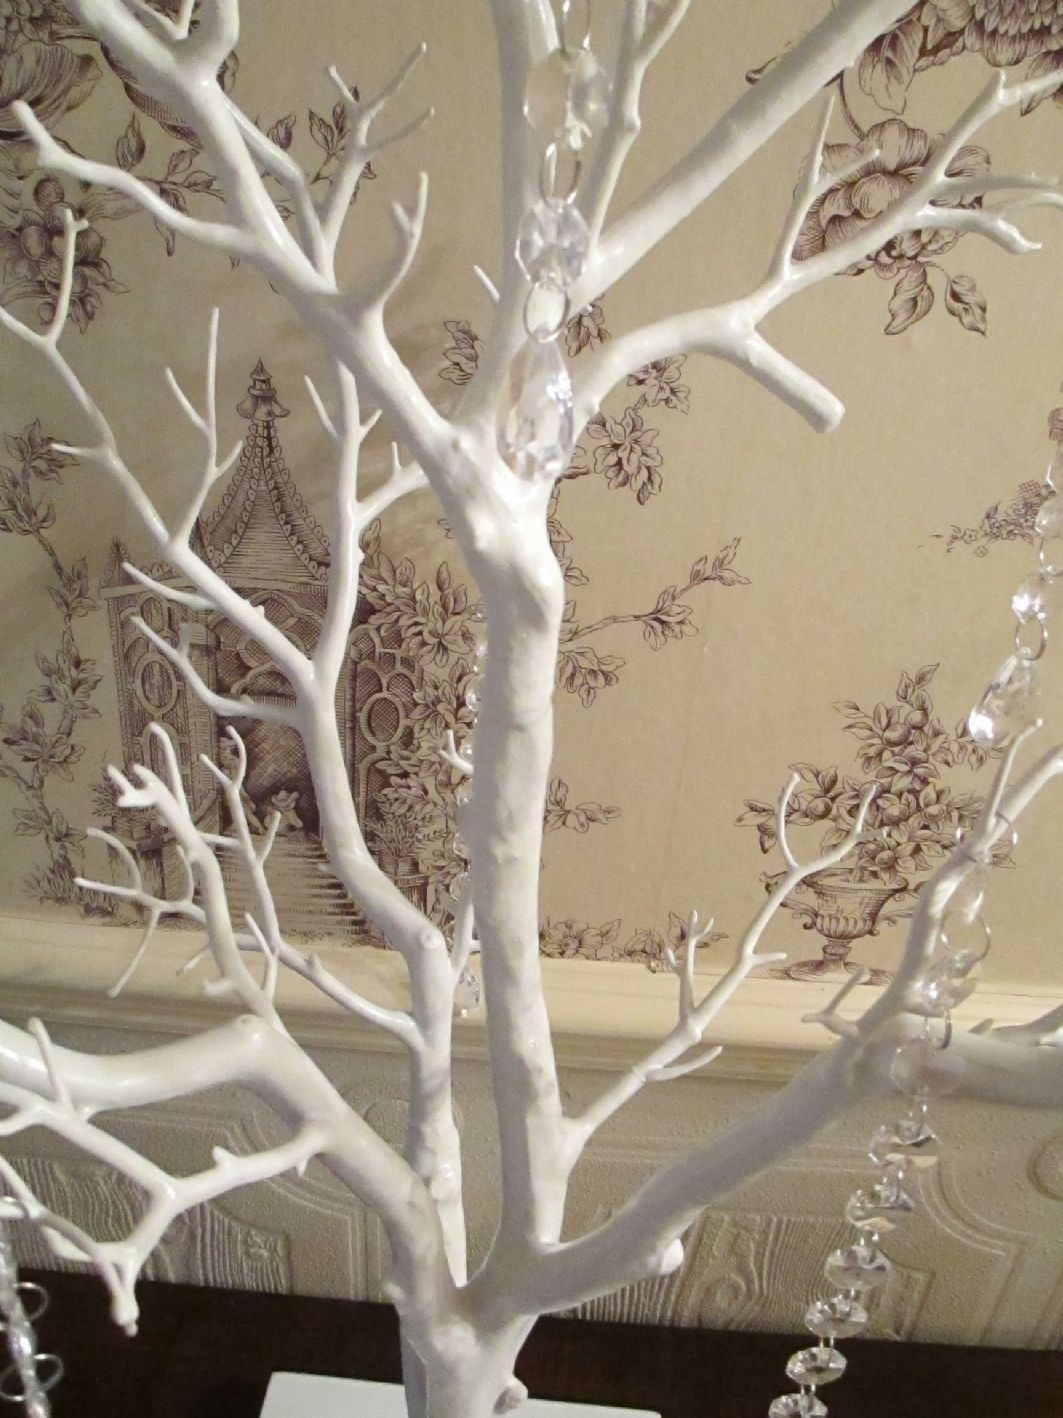 Wedding Wishing Tree Wish Tree Vintage Manzanita White 110